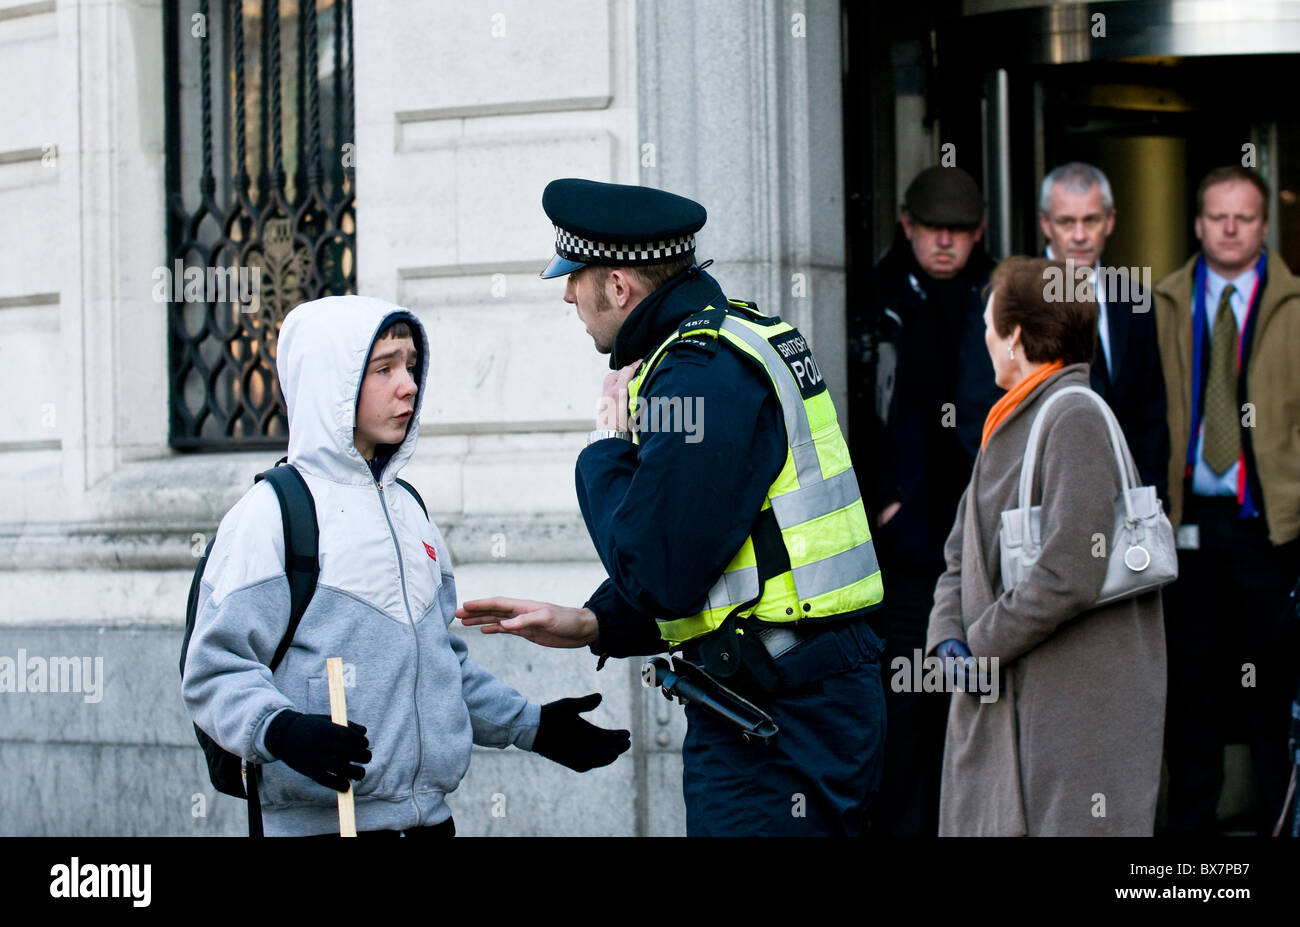 A Metropolitan police officer detaining a young male. - Stock Image